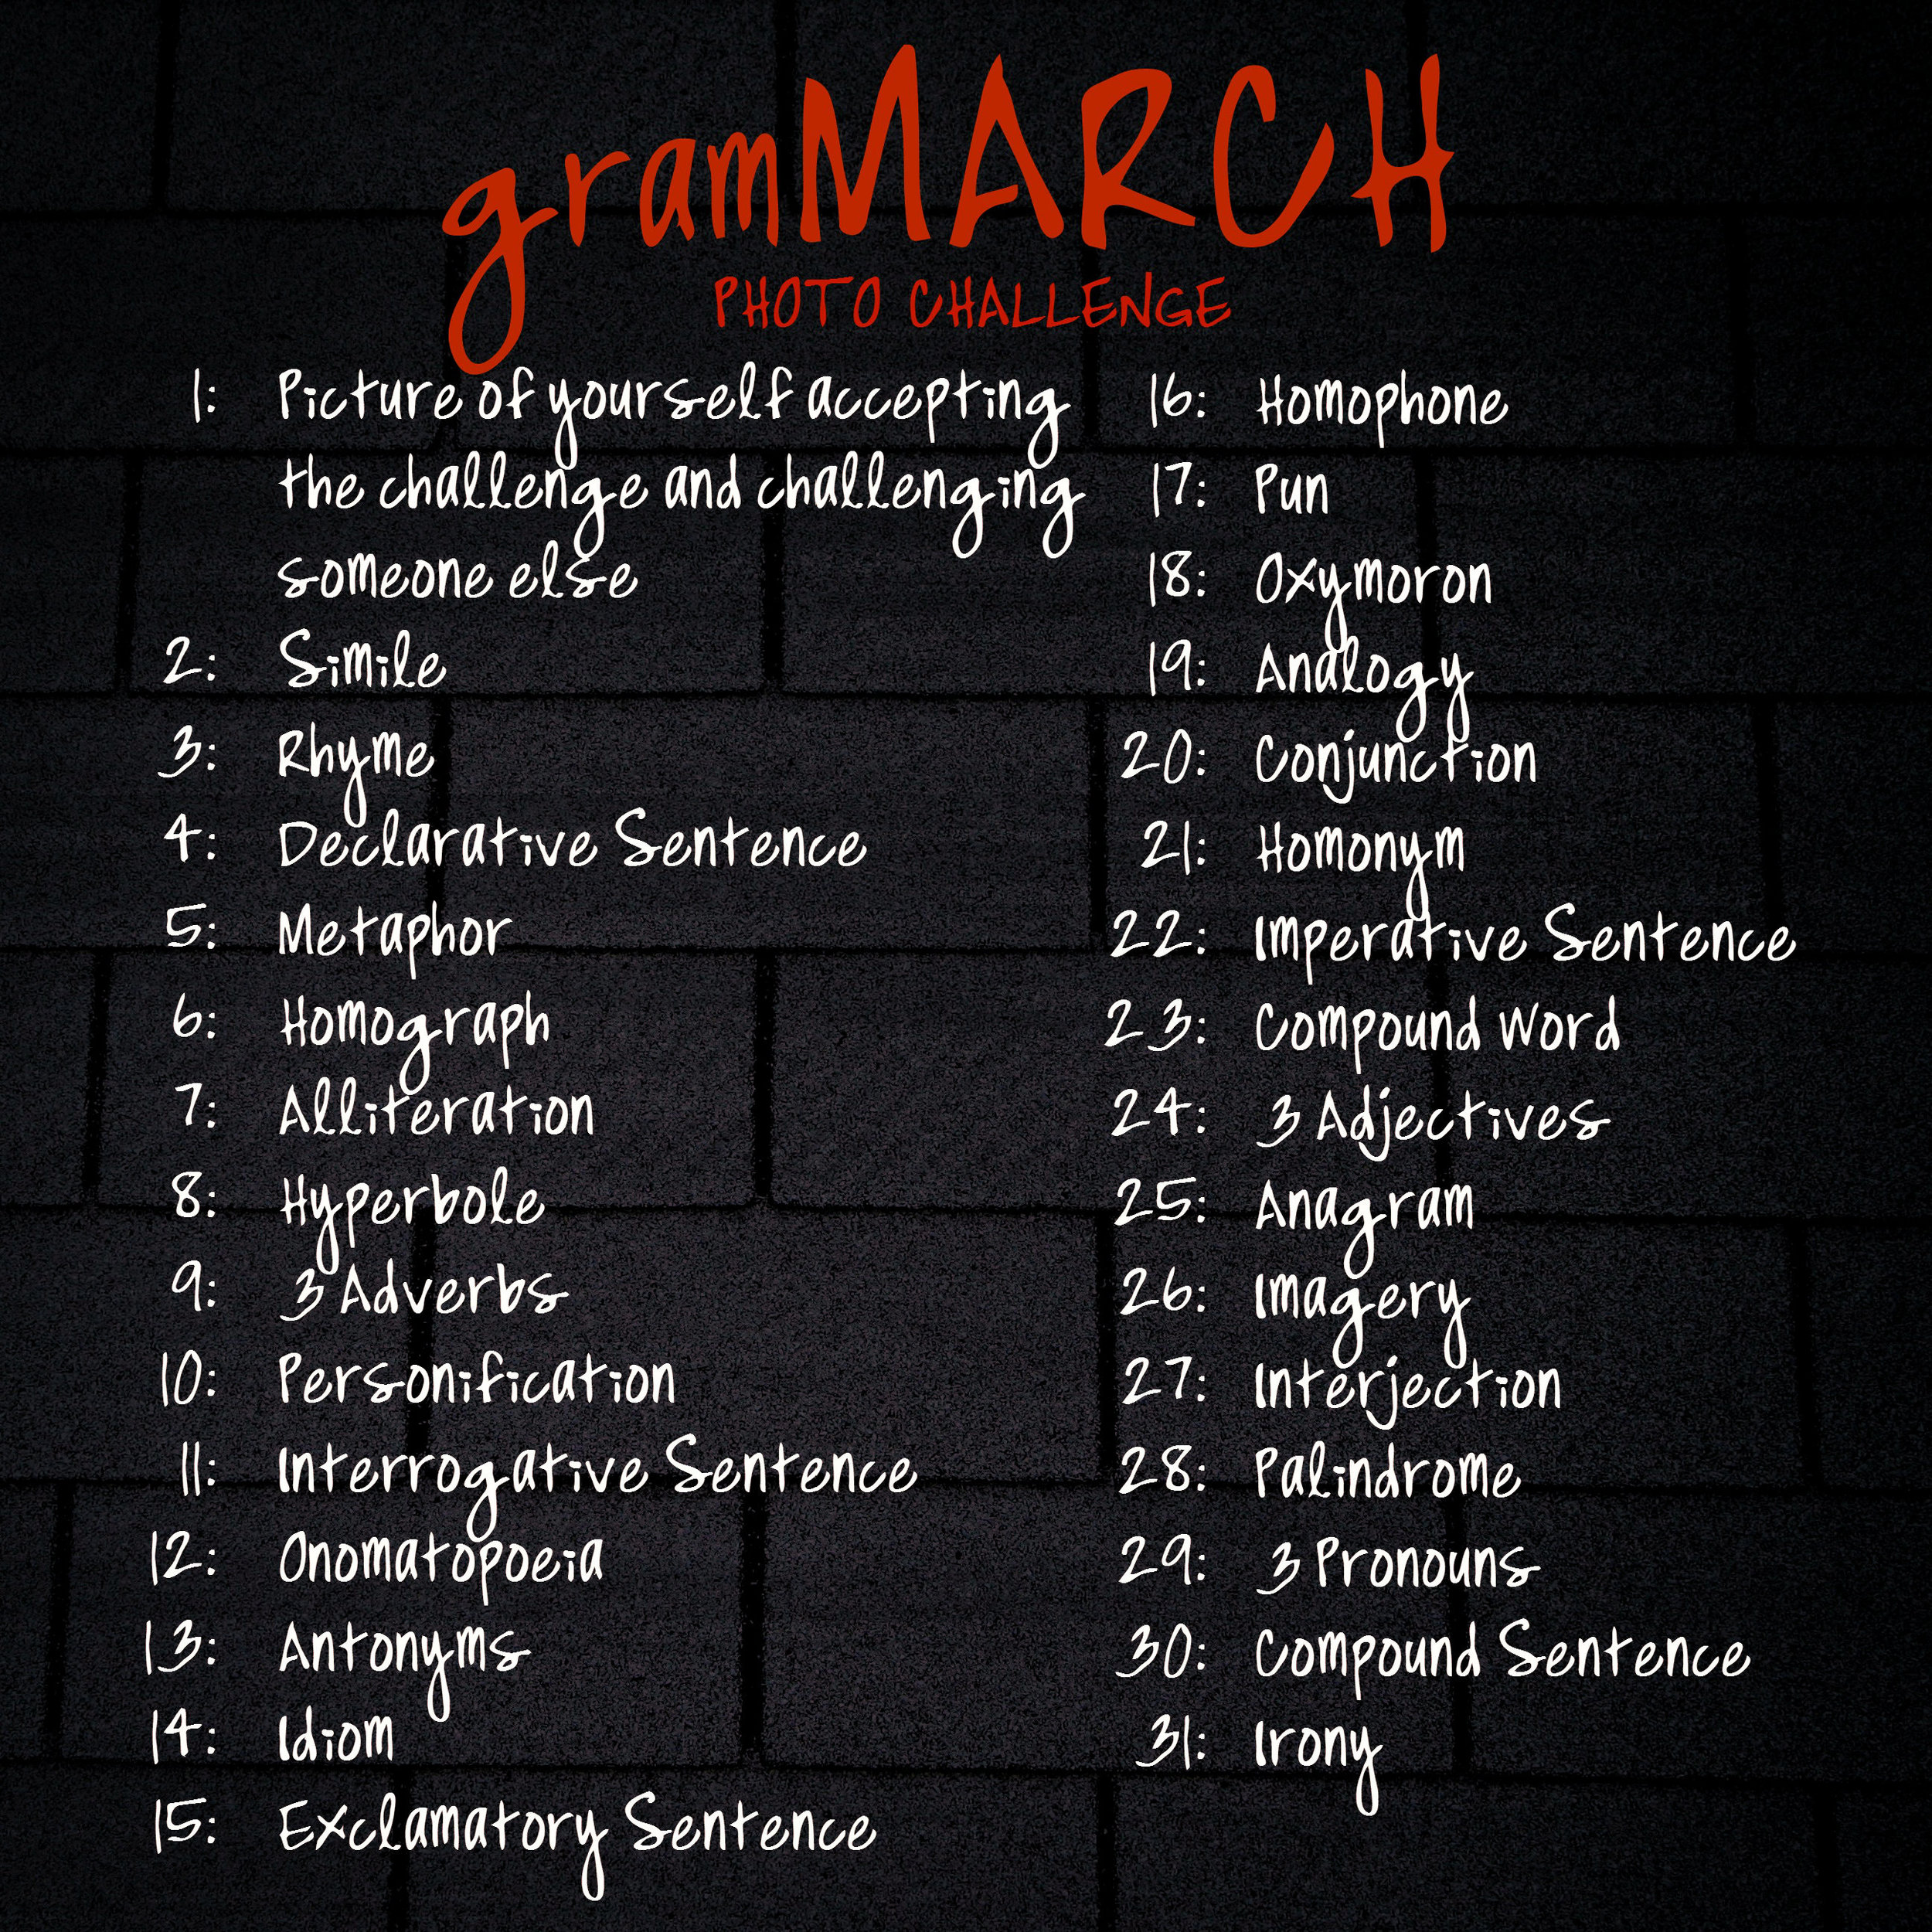 The  gramMARCH Photo (caption) Challenge  has been released!  They say a picture is worth a thousand words.  Well, no need to write a thousand words, but imagine what powerful prose could add to your picture.  Challenge yourself to write a daily caption using the specified literary device.